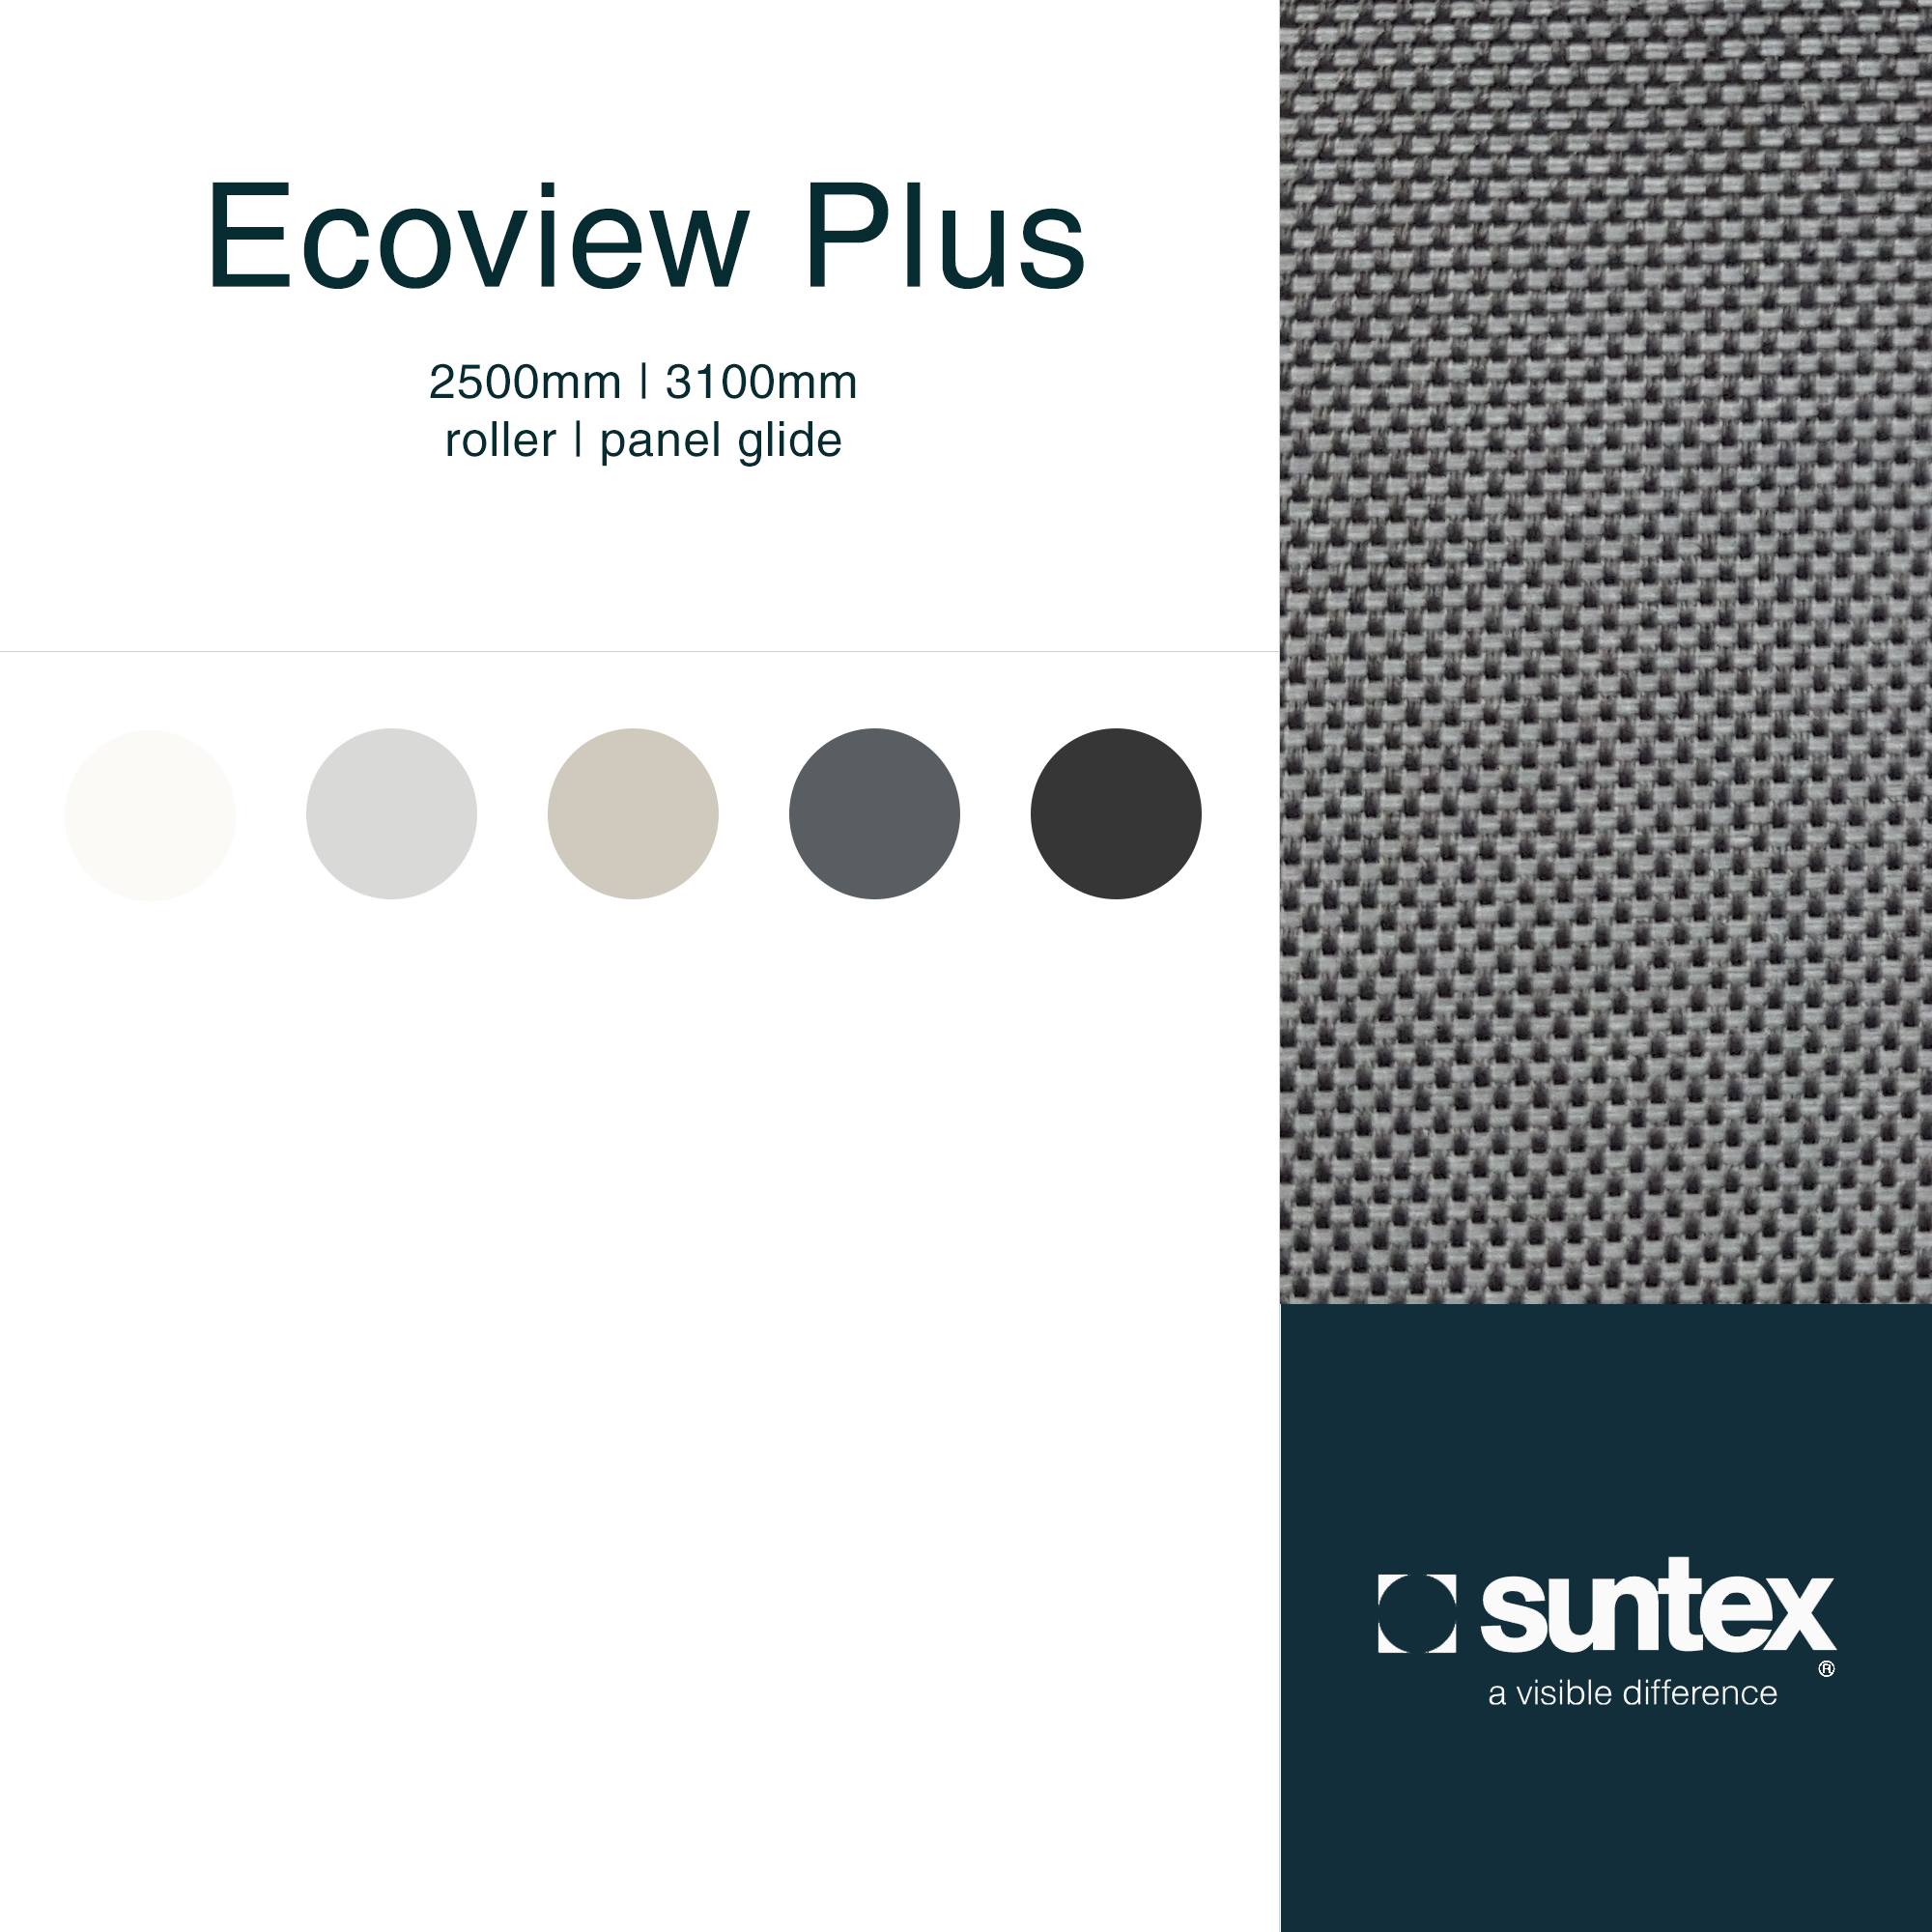 Ecoview Plus Technical Information